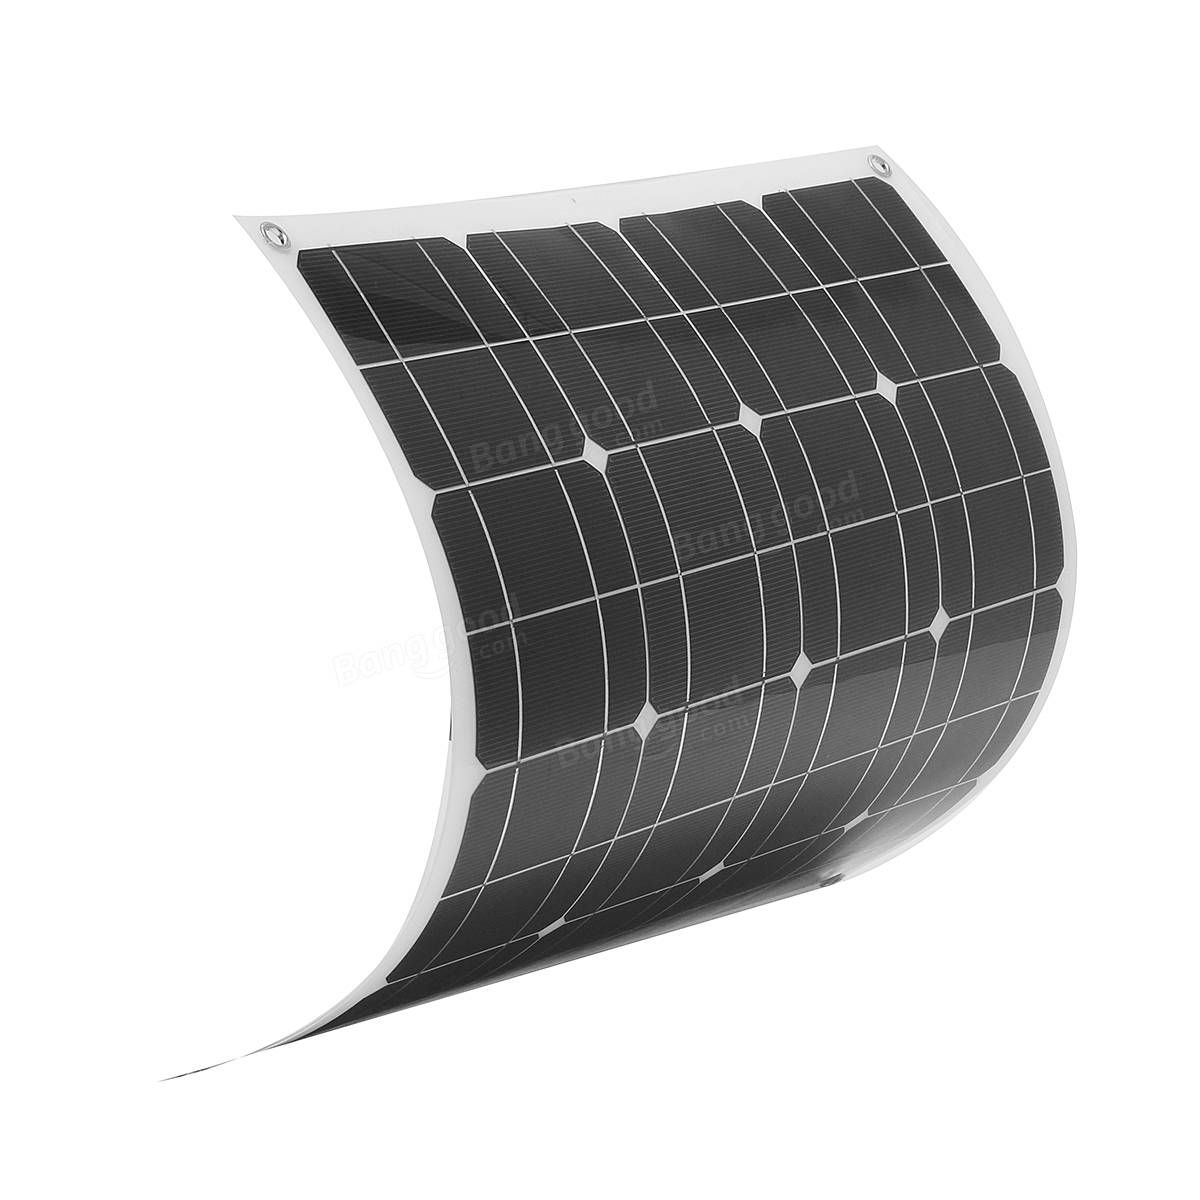 Elfeland El 04 50w 12v 560540mm Flexible Solar Panel 15m Cable Details About 12 Volt Circuit Charger Rv Battery Kit For Boat